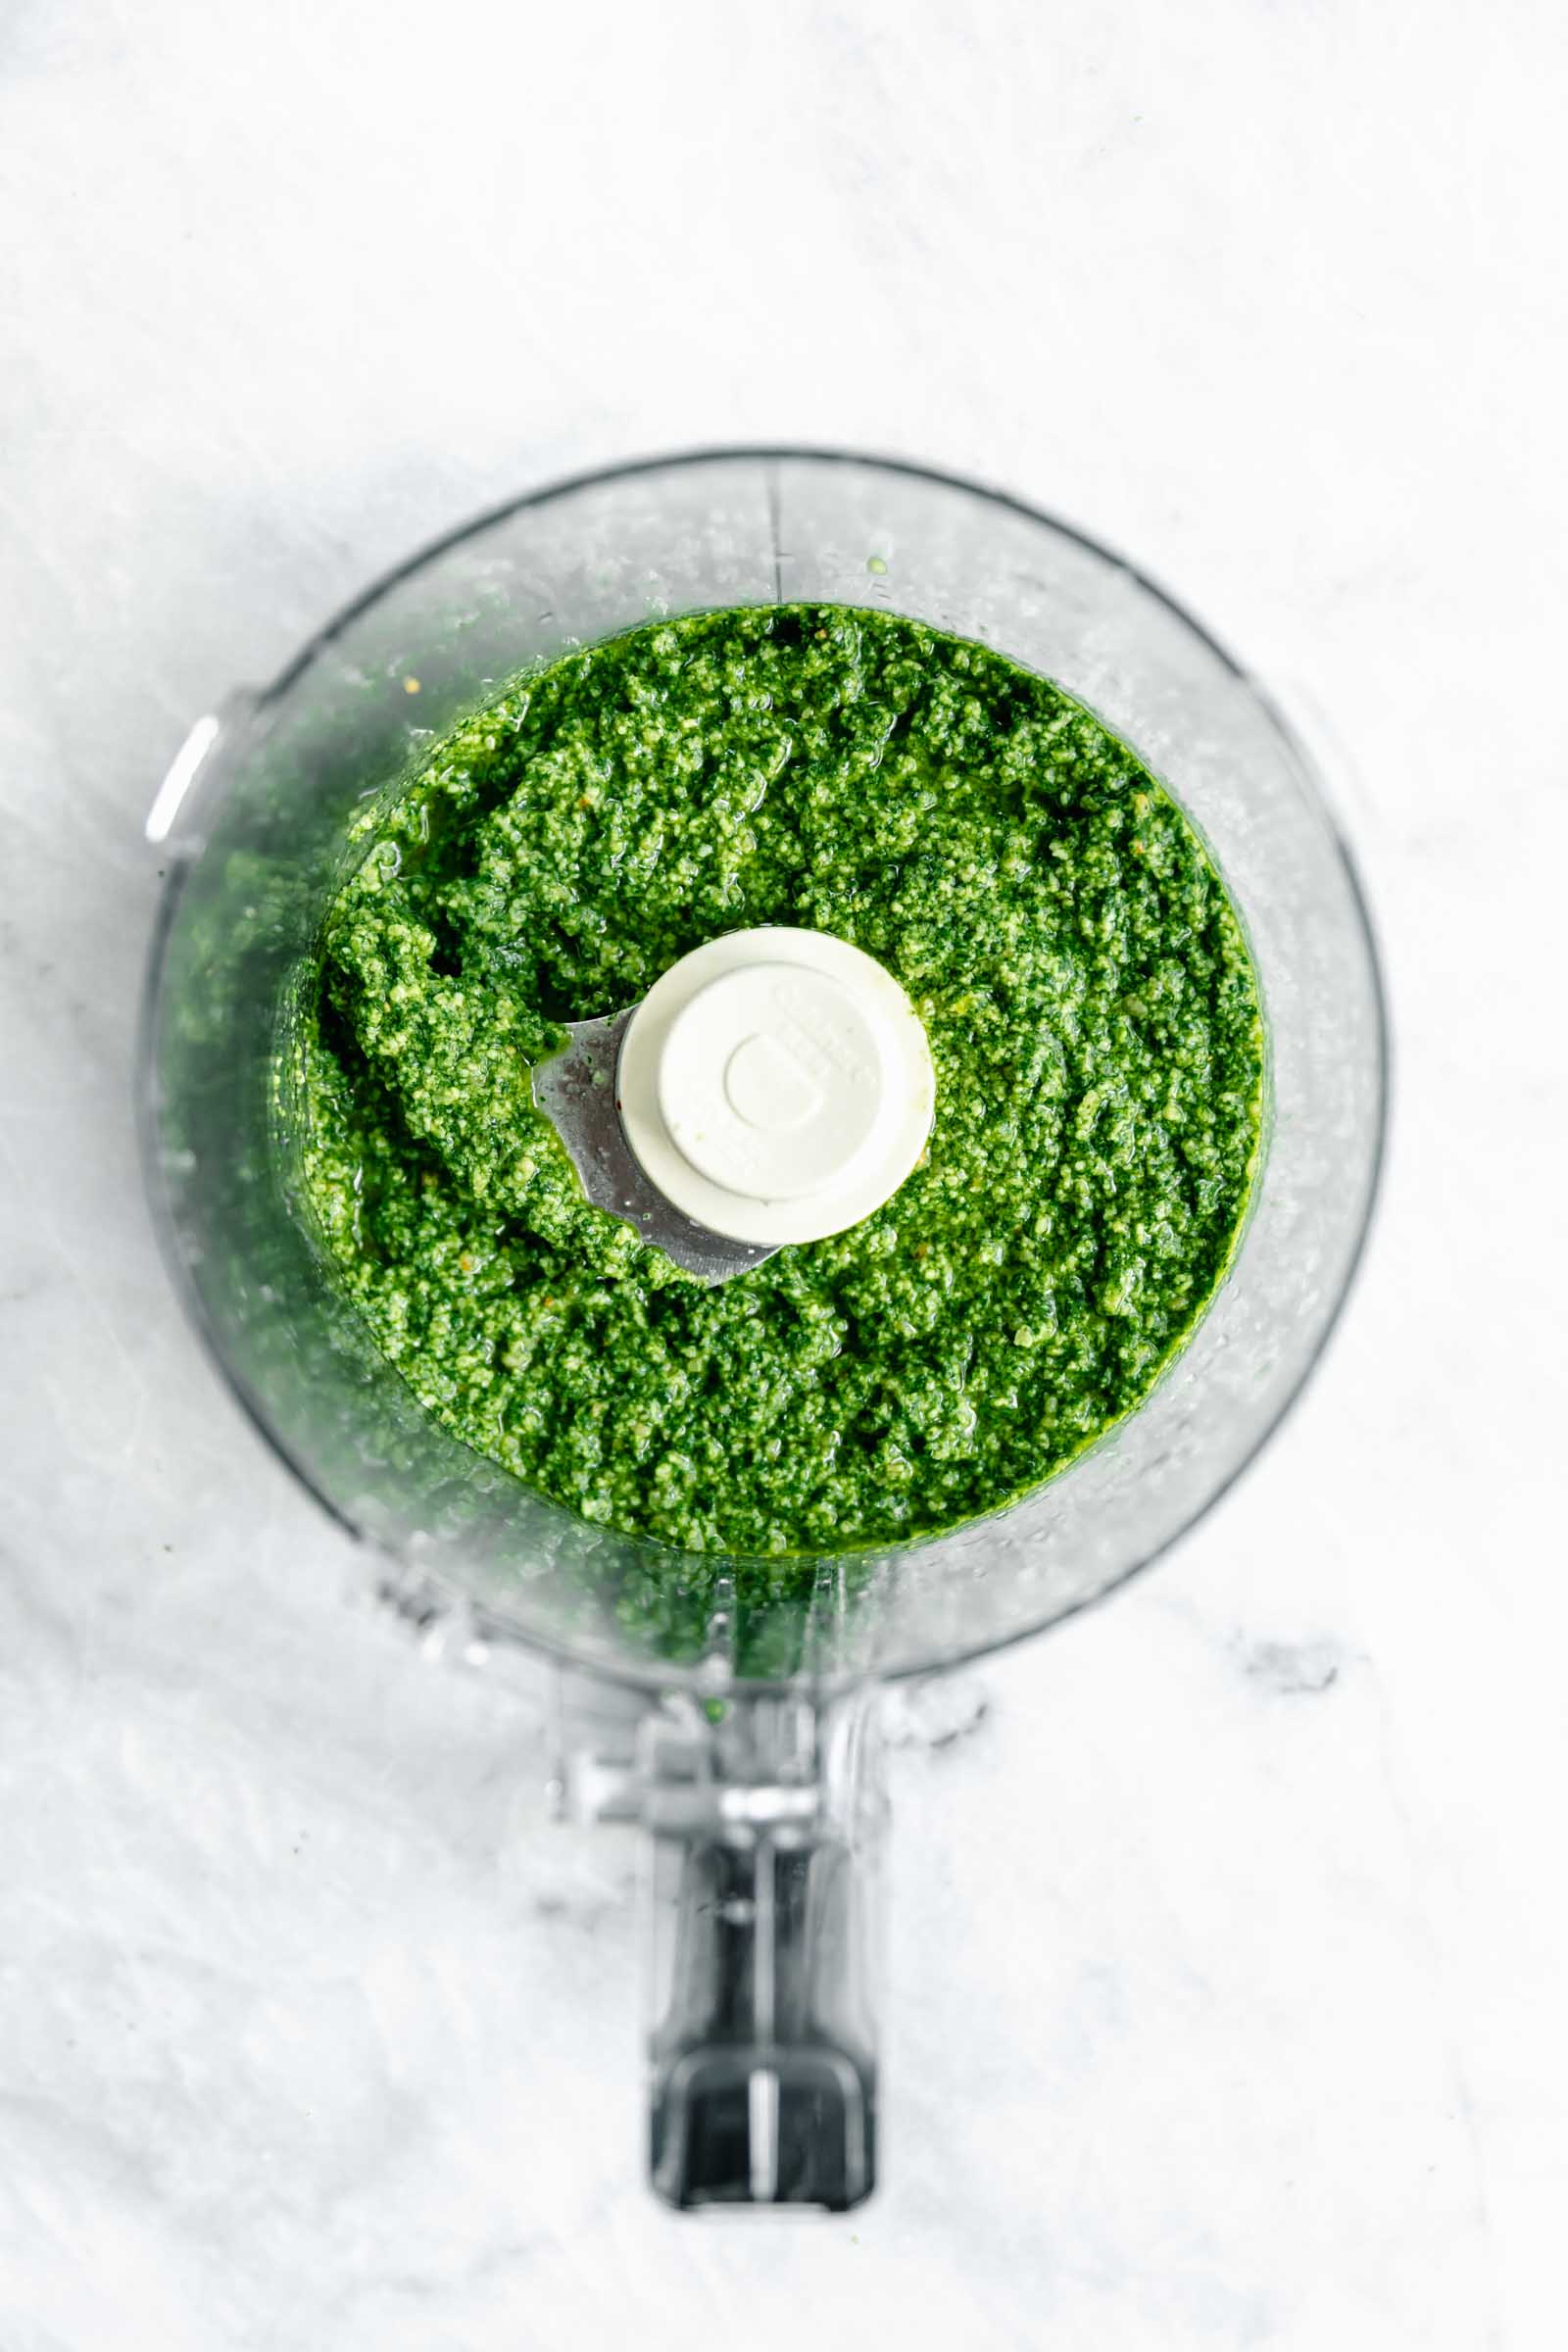 homemade pesto blended in food processor